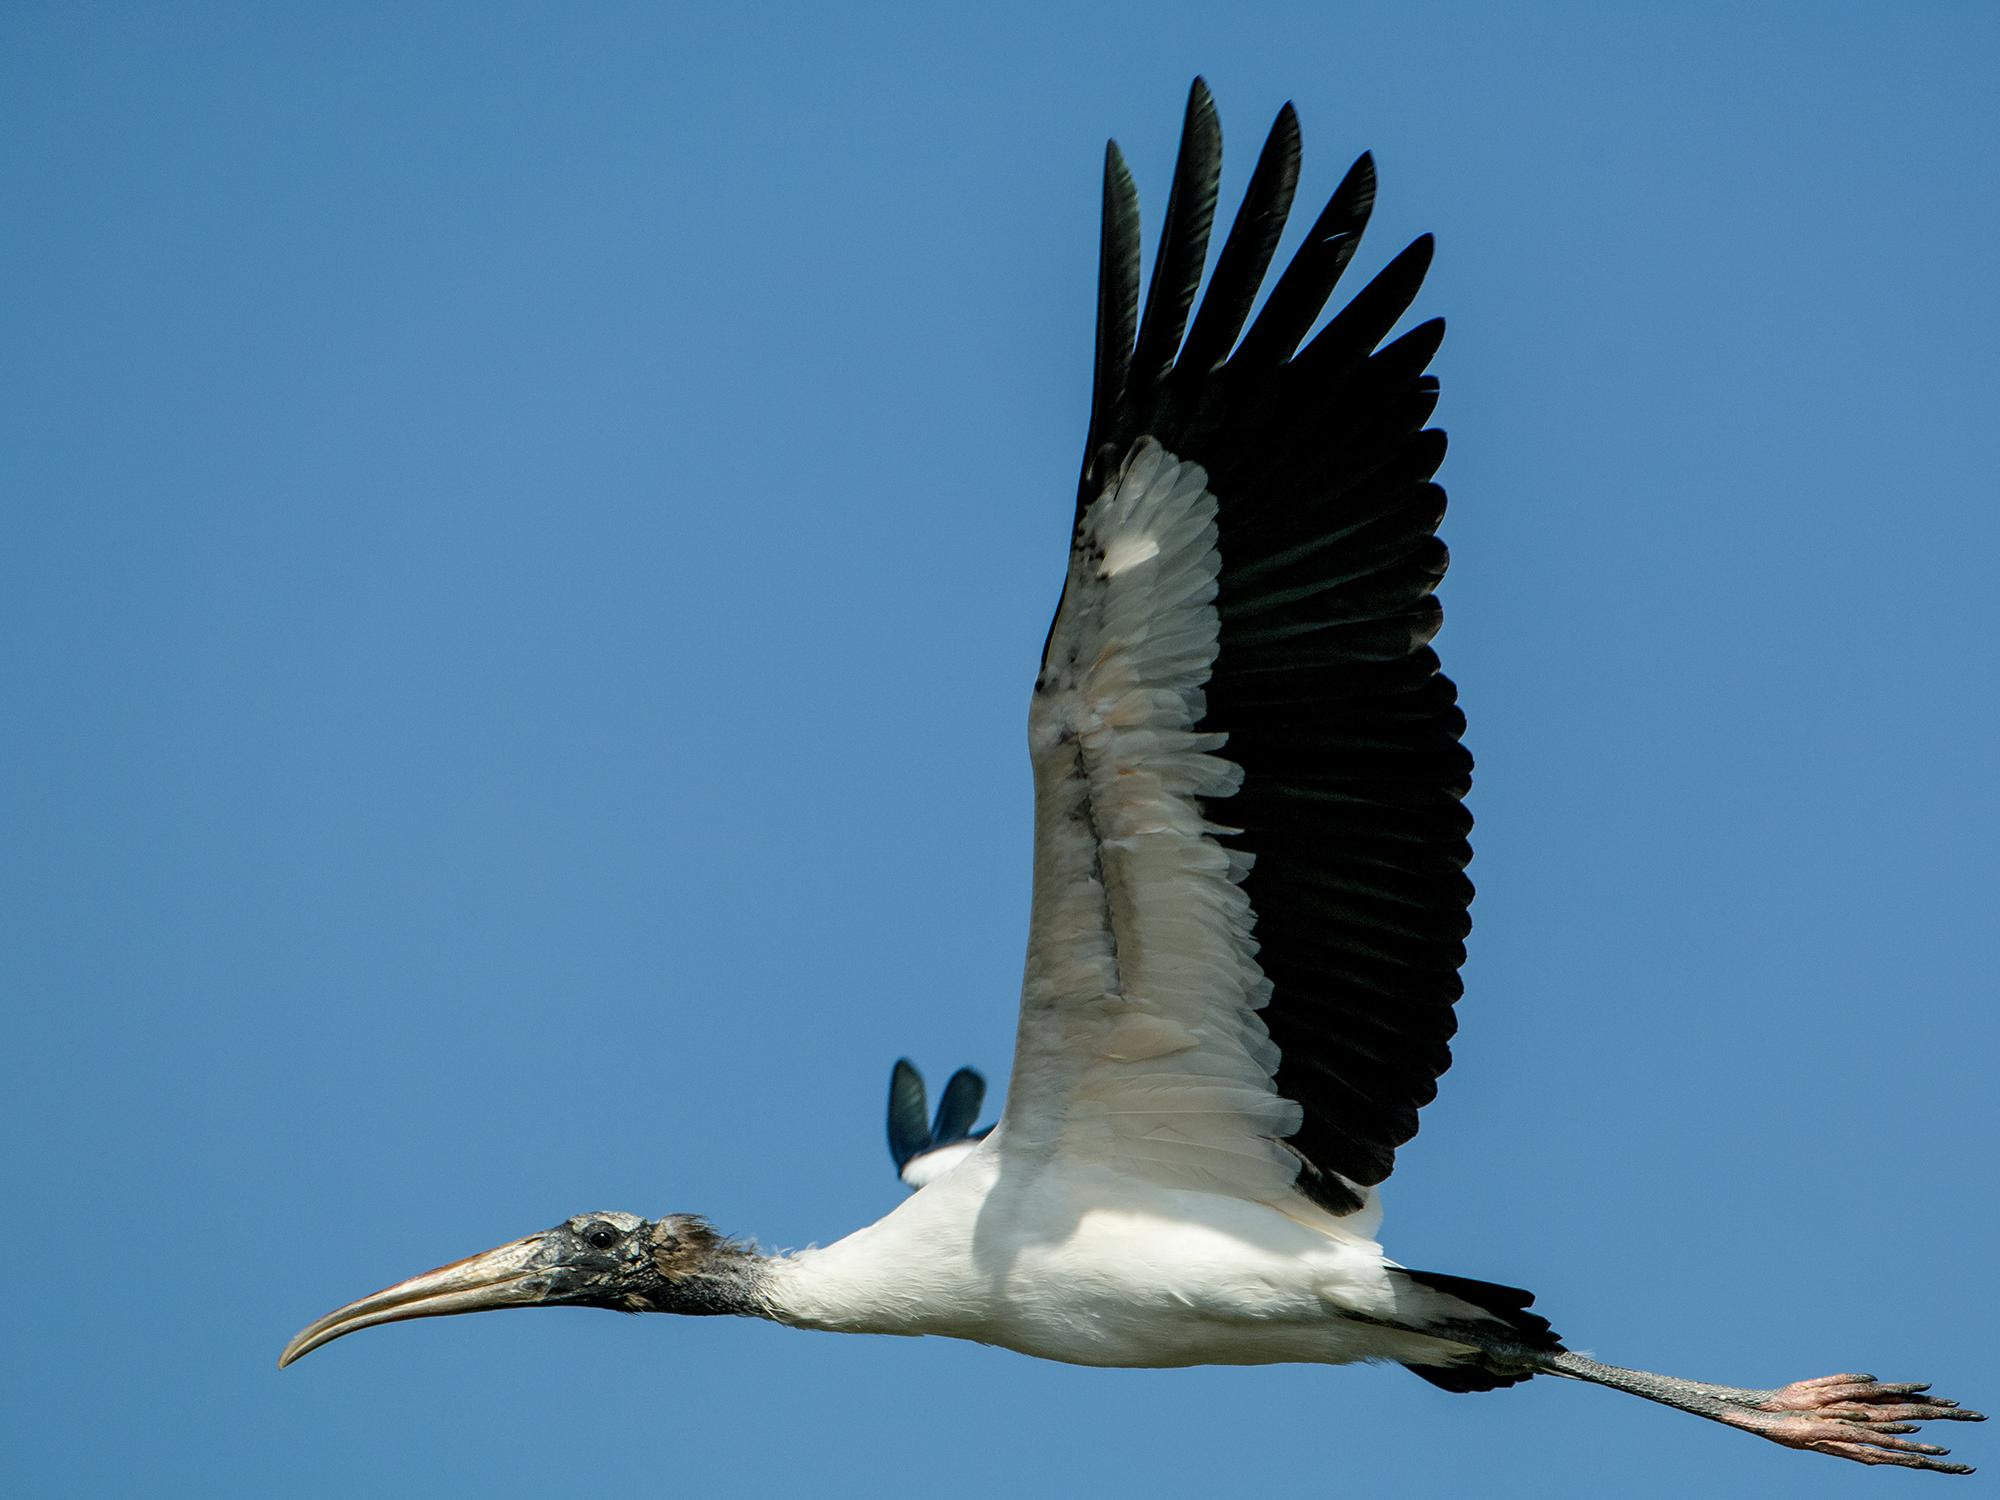 Wood storks stand out in the sky with their long wingspans, black-and-white color patterns and slow wing beats. (Photo by Bill Stripling).